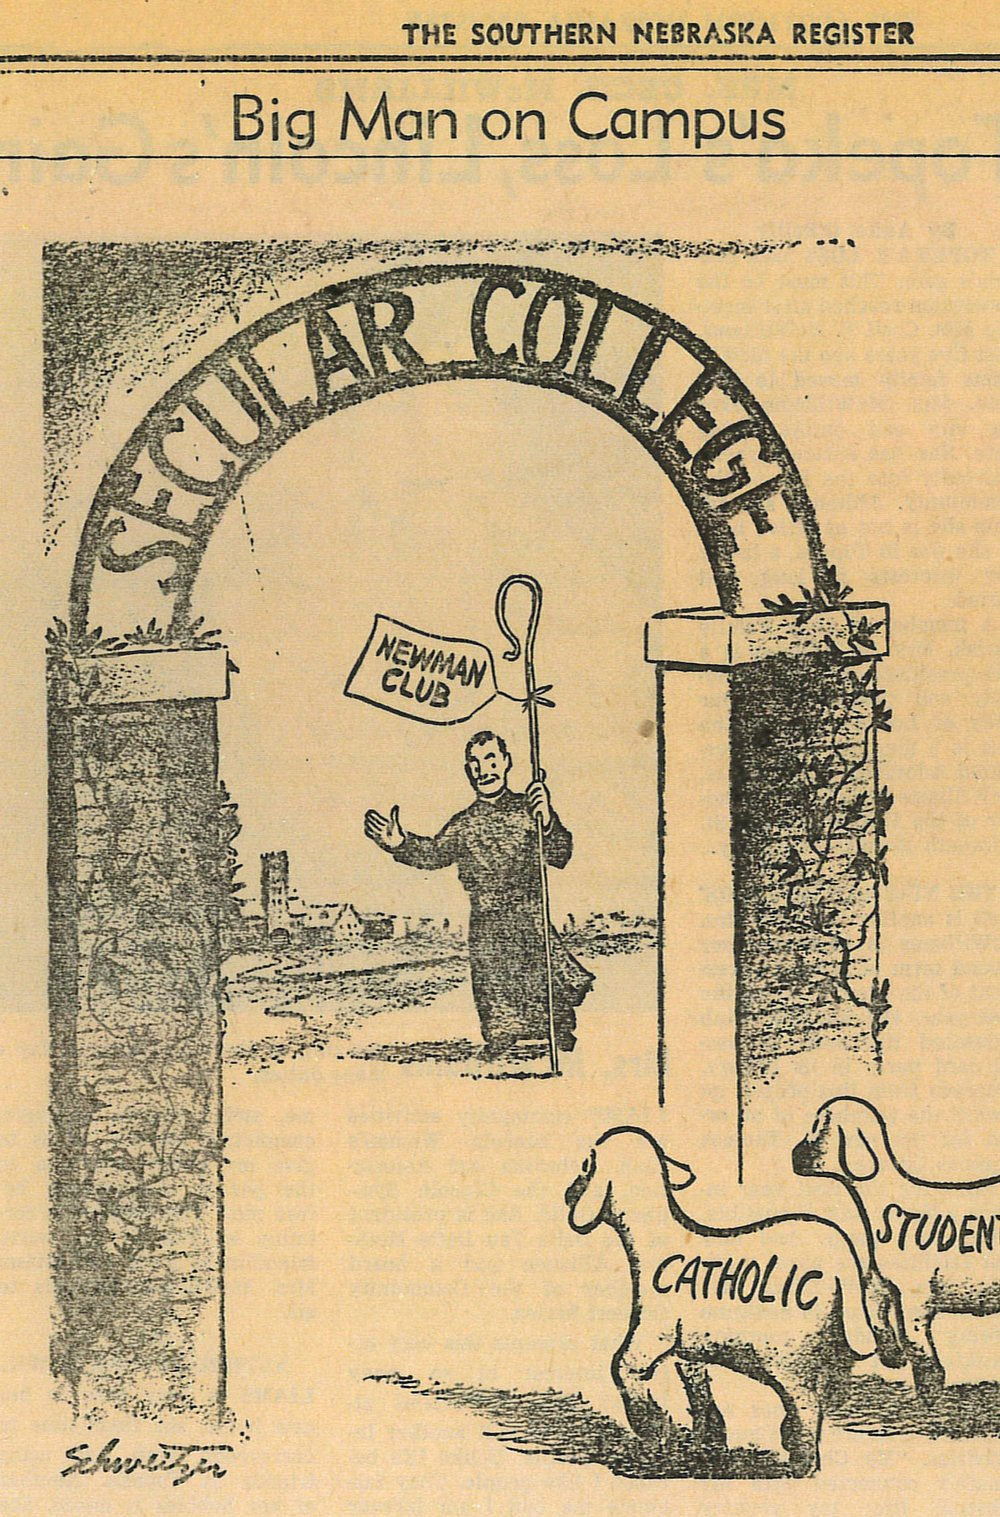 Newspaper illustration from 1960, when the previous St. Thomas Aquinas Church was built.